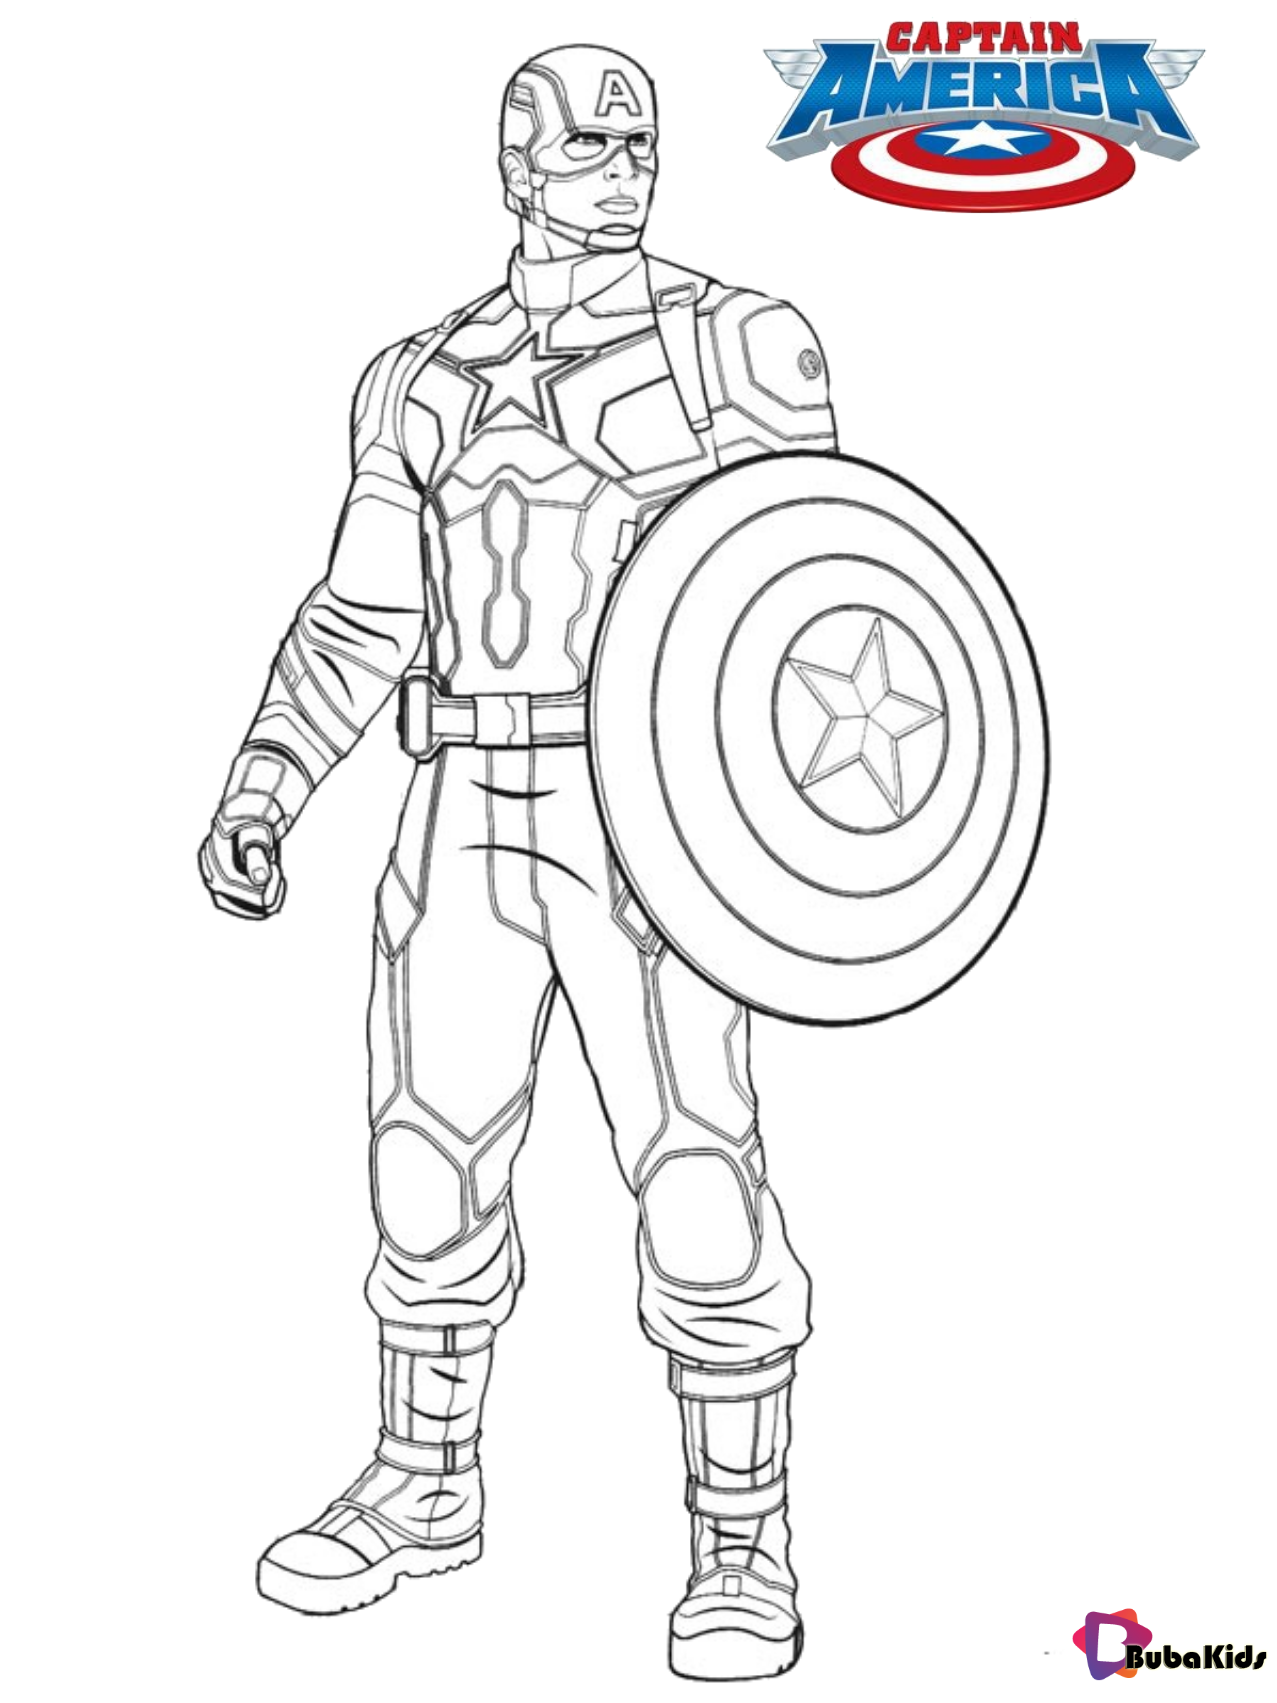 Pin By Sketchers 2017 On Cartoon Coloring Pages In 2020 Captain America Coloring Pages Avengers Coloring Pages Superhero Coloring Pages